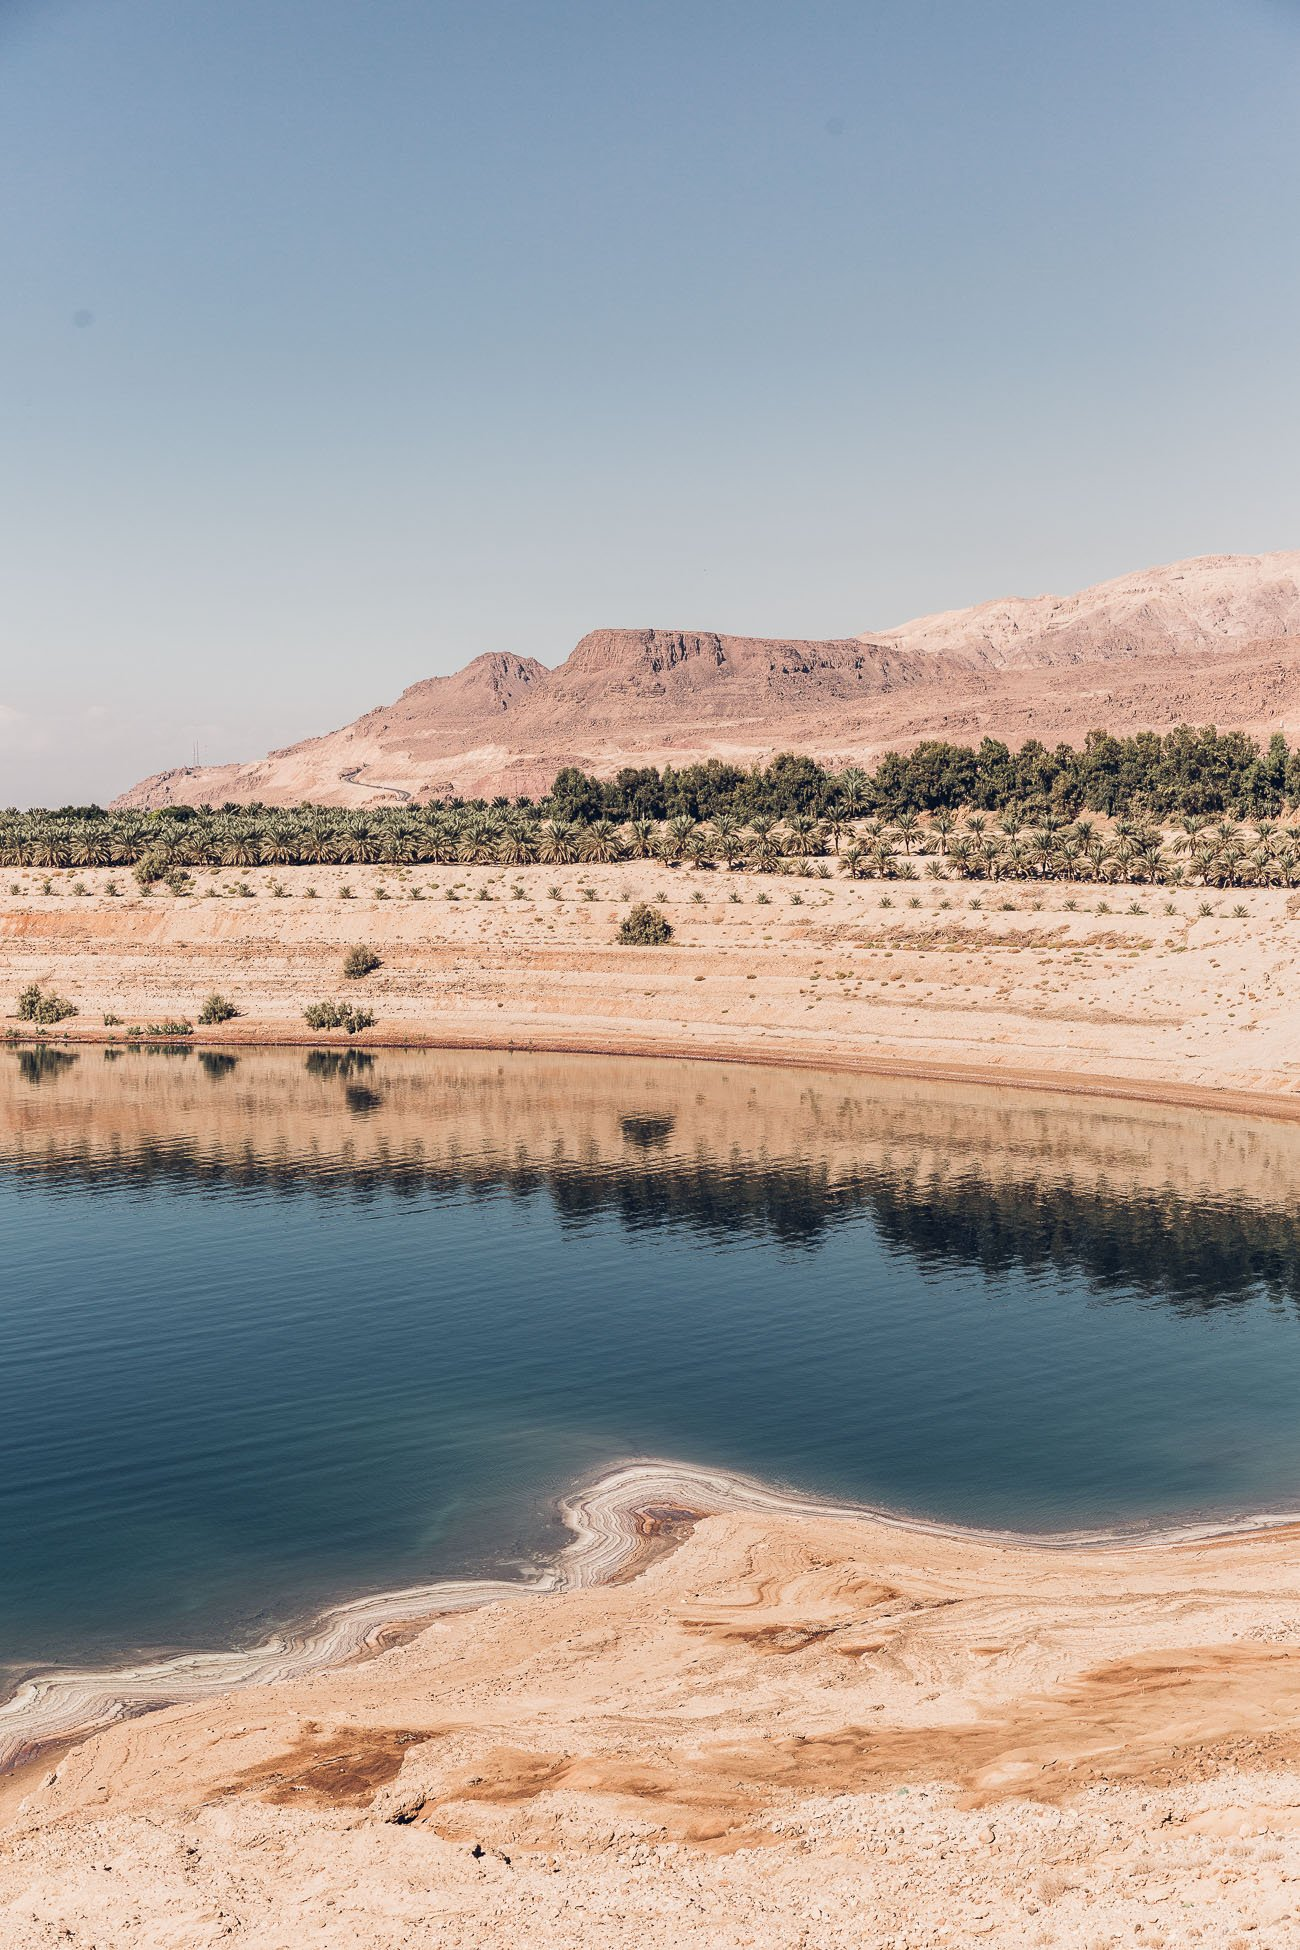 East Coast of the Dead Sea in Jordan